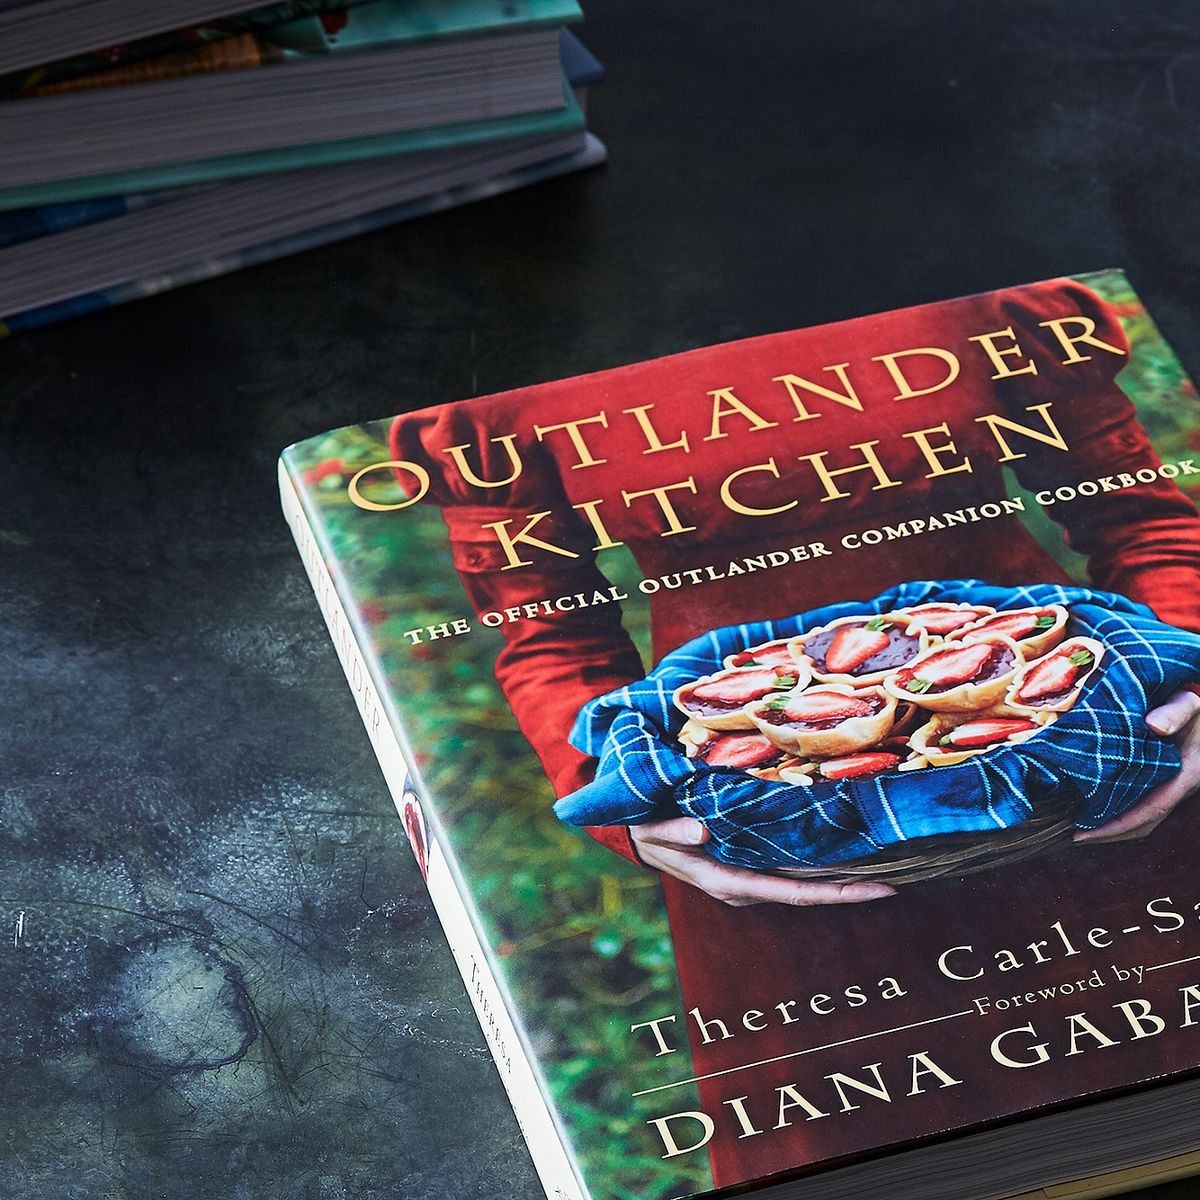 What To Cook First From The Outlander Kitchen By Theresa